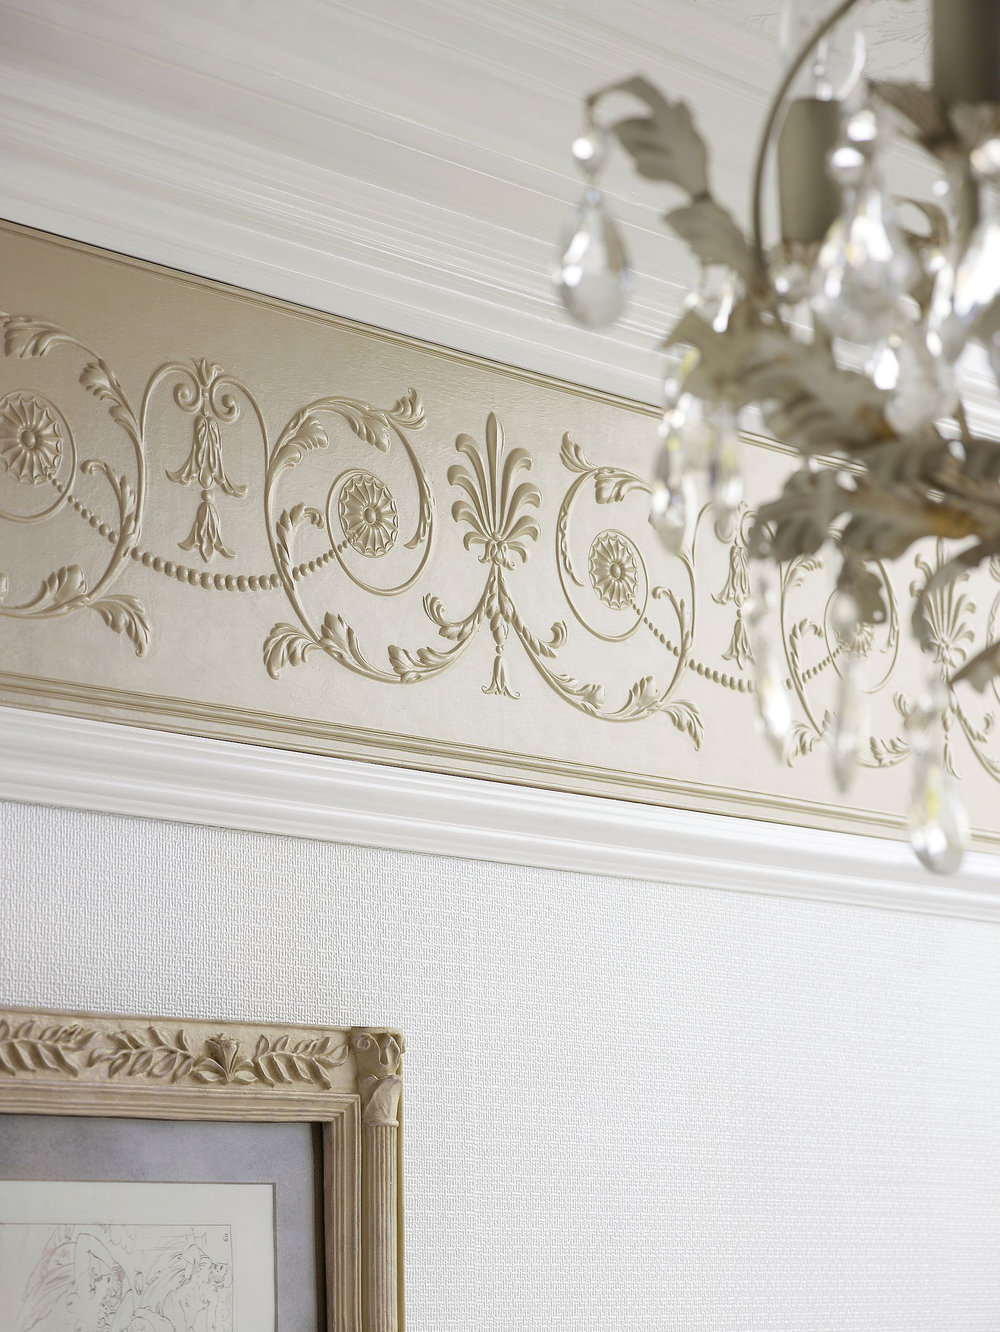 Diana Frieze By Lincrusta Paintable Wallpaper Direct